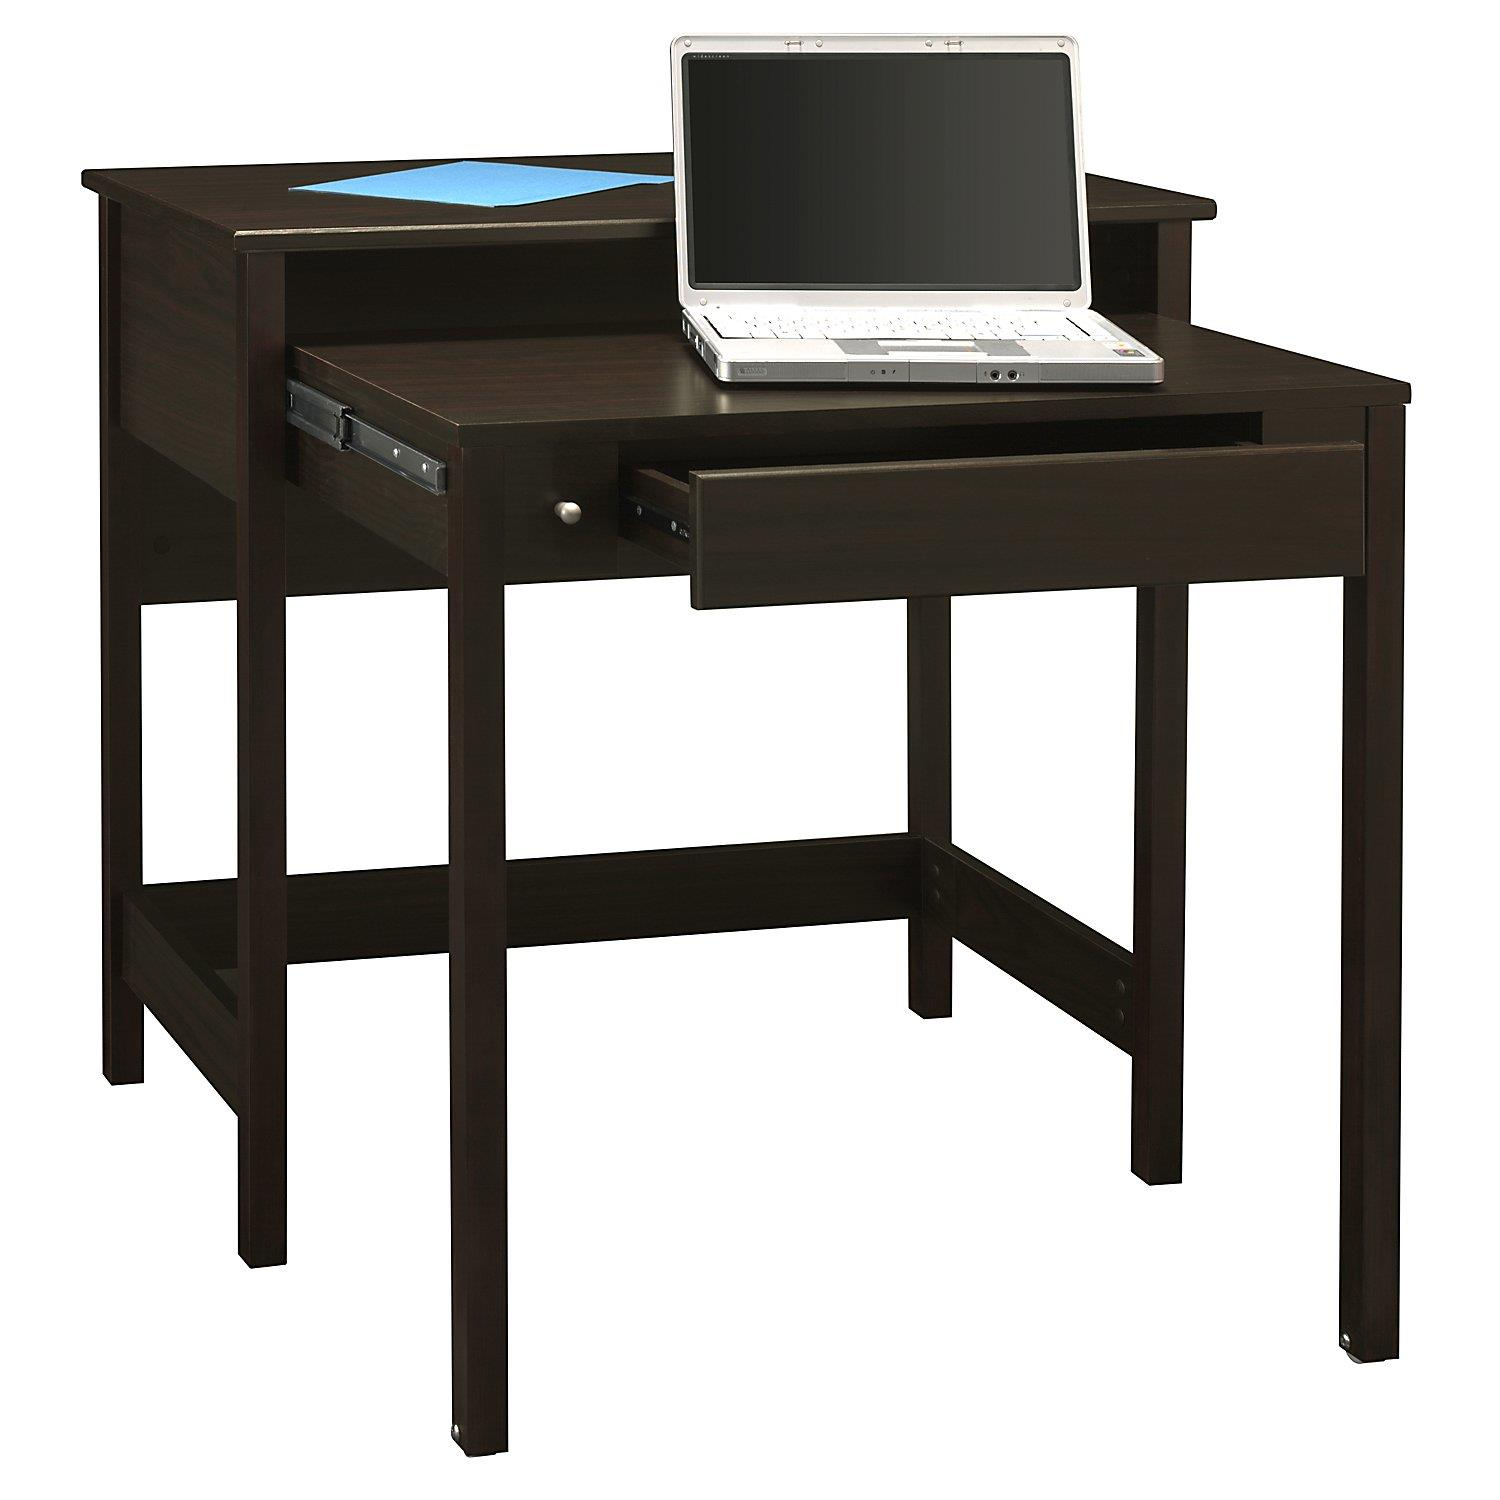 pullout laptop desk - Bush Furniture